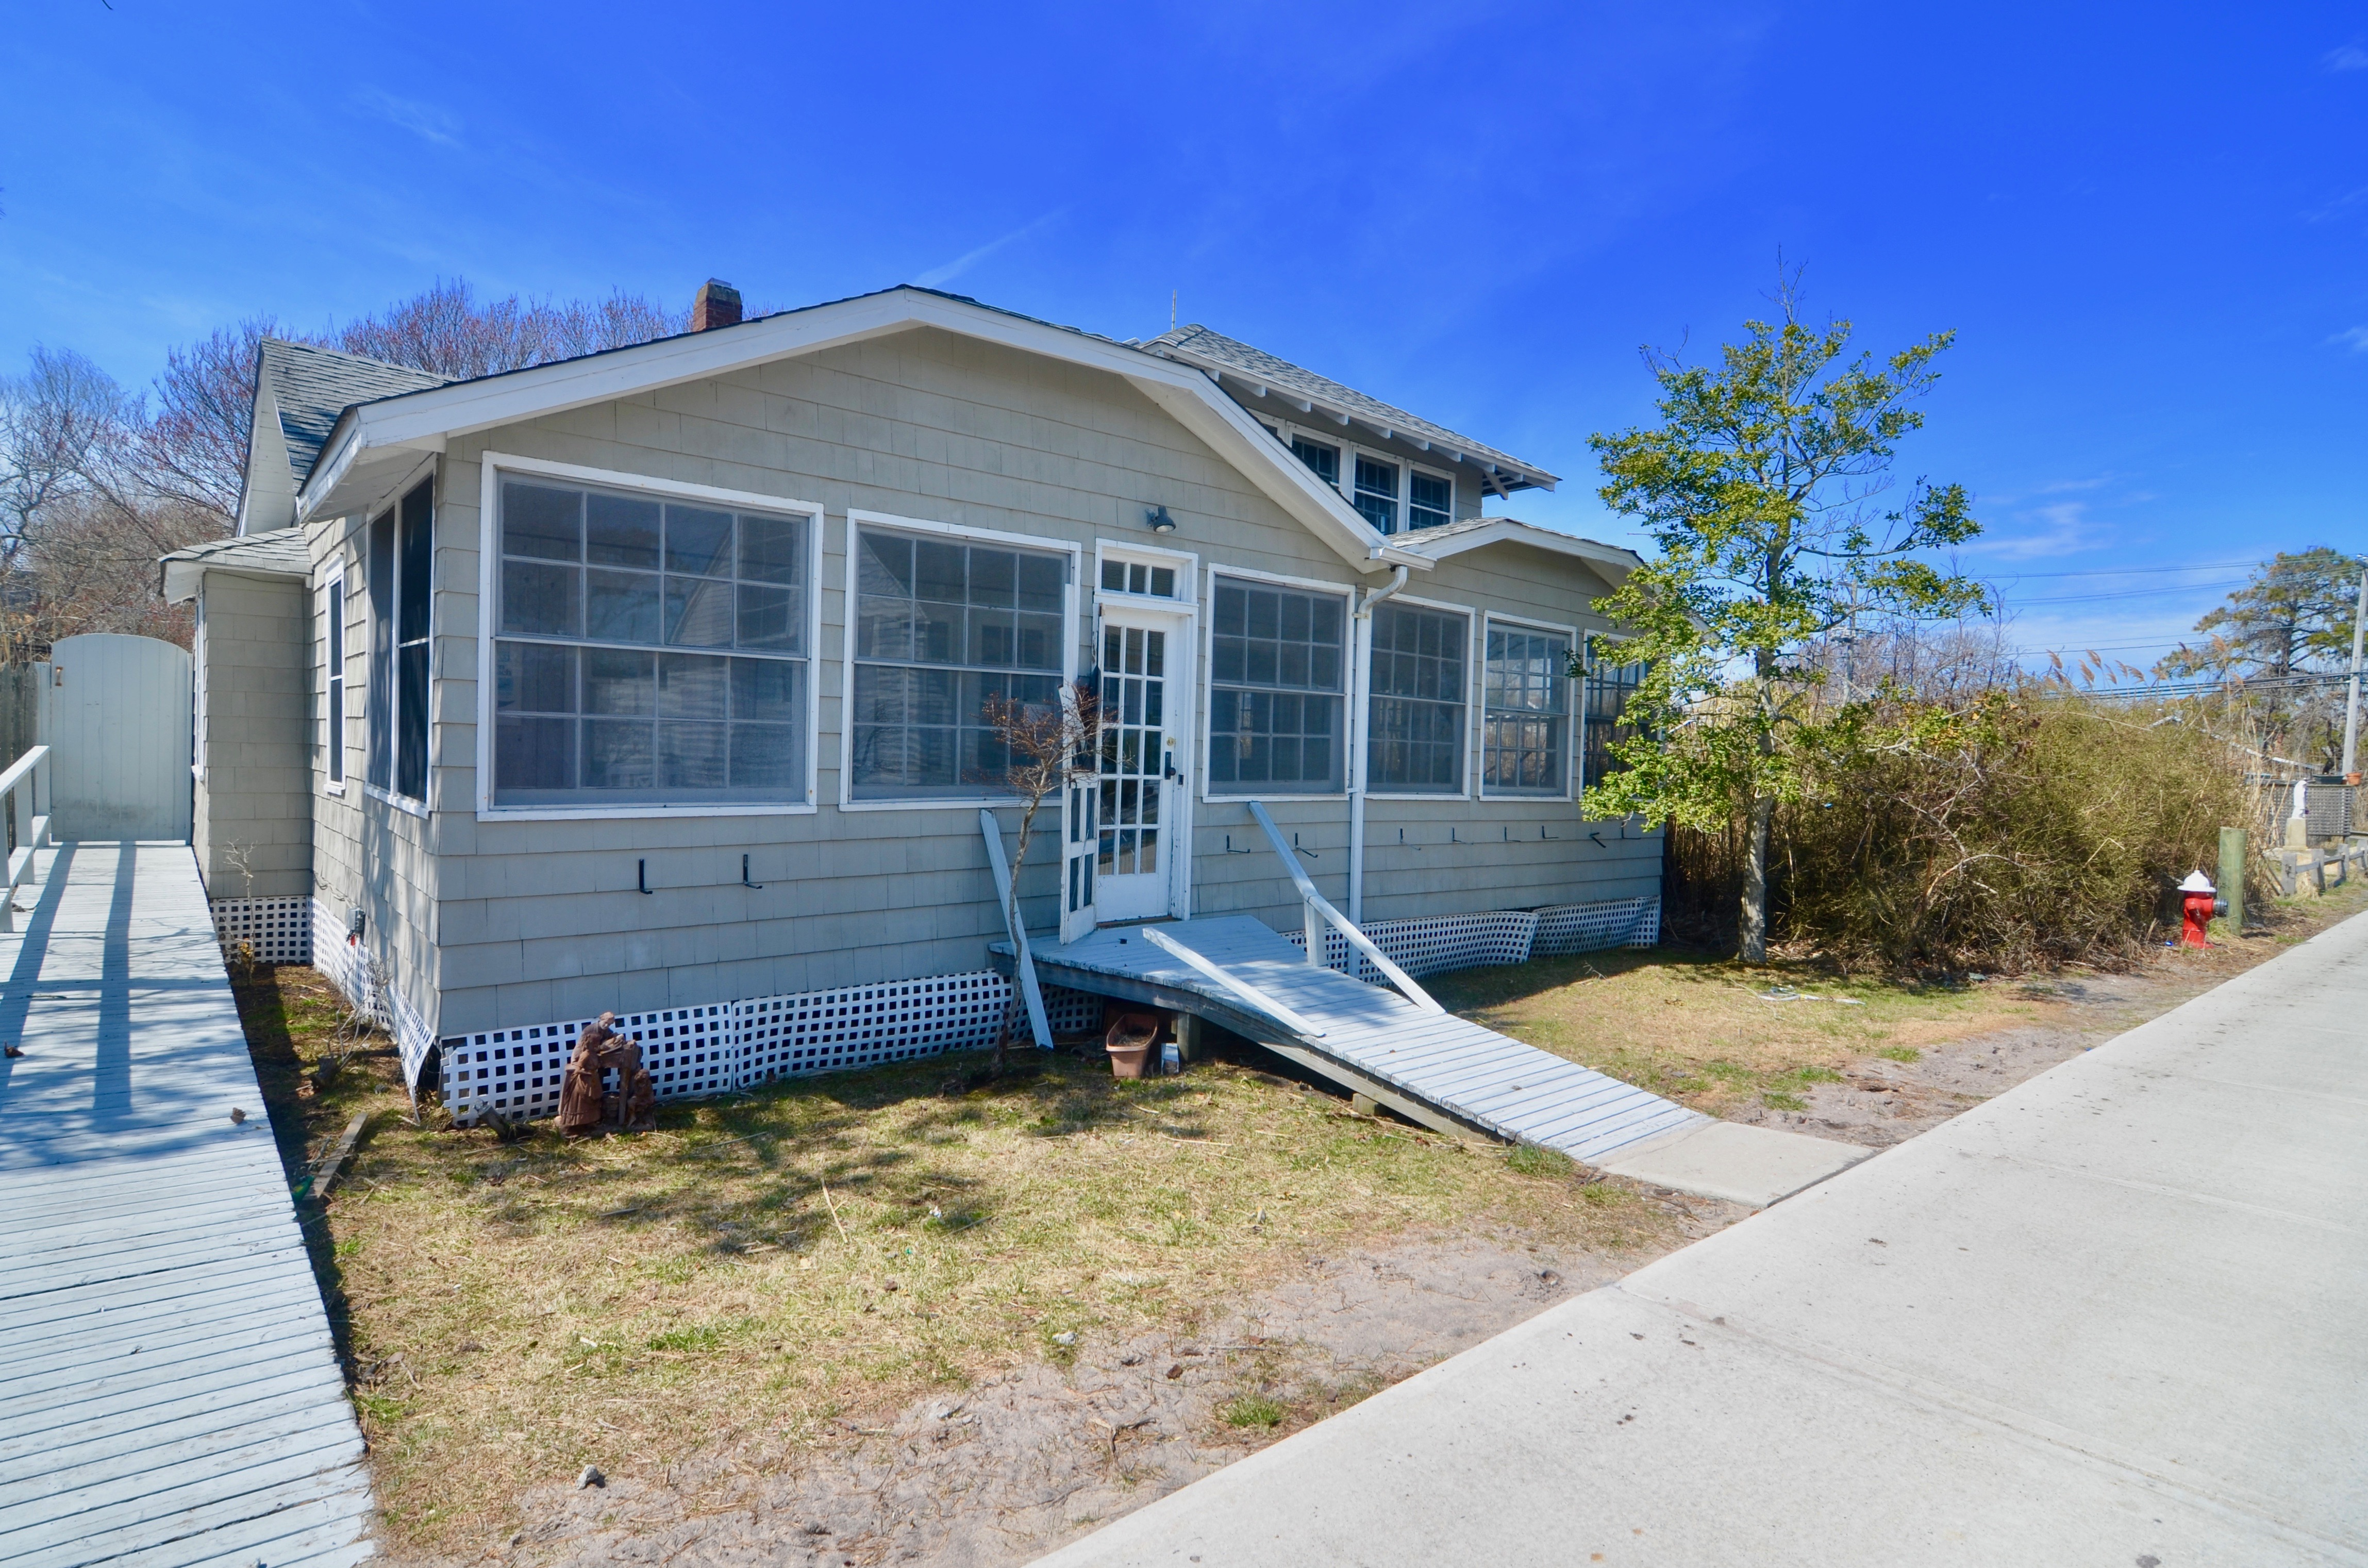 """<a href=/""""http://www.a2vh.com/Unit/Details/133379"""">For real time availability and online booking click here </a>  Classic Fire Island Cottage on ocean block. Charming home with 4 bedrooms, 1 full bath, 2 half baths and outdoor shower. Bright and airy space with large living and dining area that leads onto the enclosed front porch. Enclosed back porch with a half bath. Laundry inside off of kitchen. 3 bedrooms downstairs with a full bathroom. Master retreat upstairs with a half bath. Spacious East facing back deck with out door shower. This house is 2 minutes from the beach and 2 minutes to town.  July- $14,000 August- $16,000 Memorial Day to Labor Day- $32,000"""